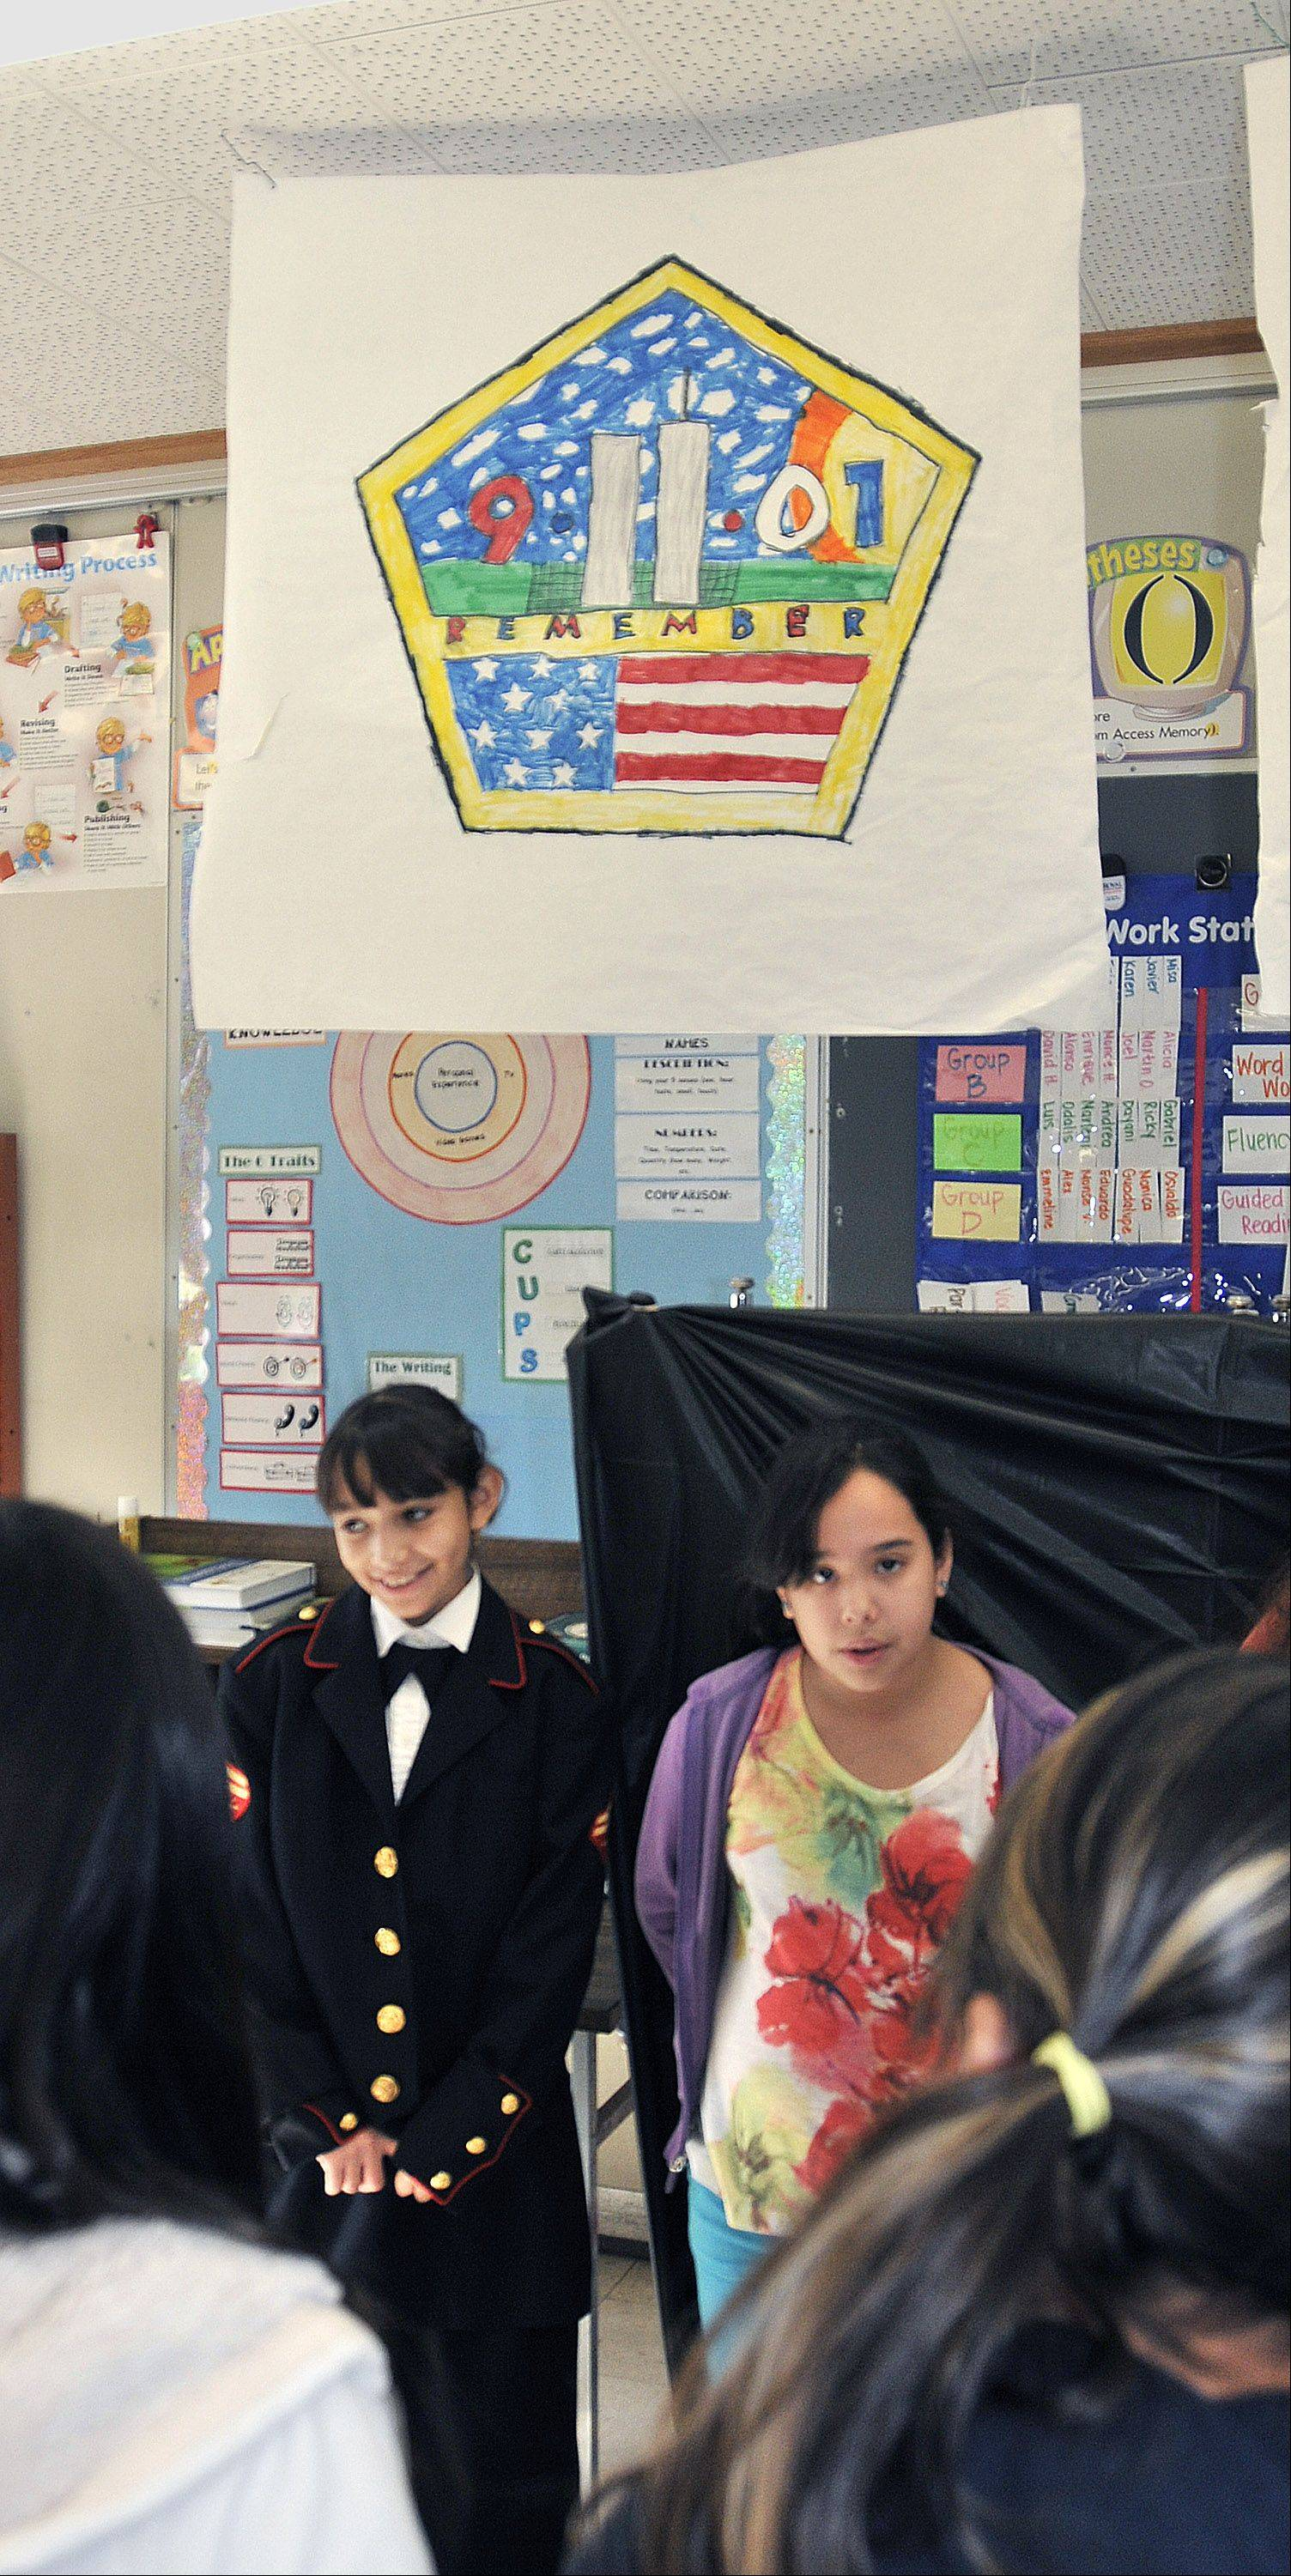 With a backdrop of a drawing remembering the 911 terrorist attacks, Cynthia Espino is a U.S. Marine and Jacquelen Alacantra portrays a New York resident. Fifth-grade students at Gary School in West Chicago presented a living history for Veterans Day.